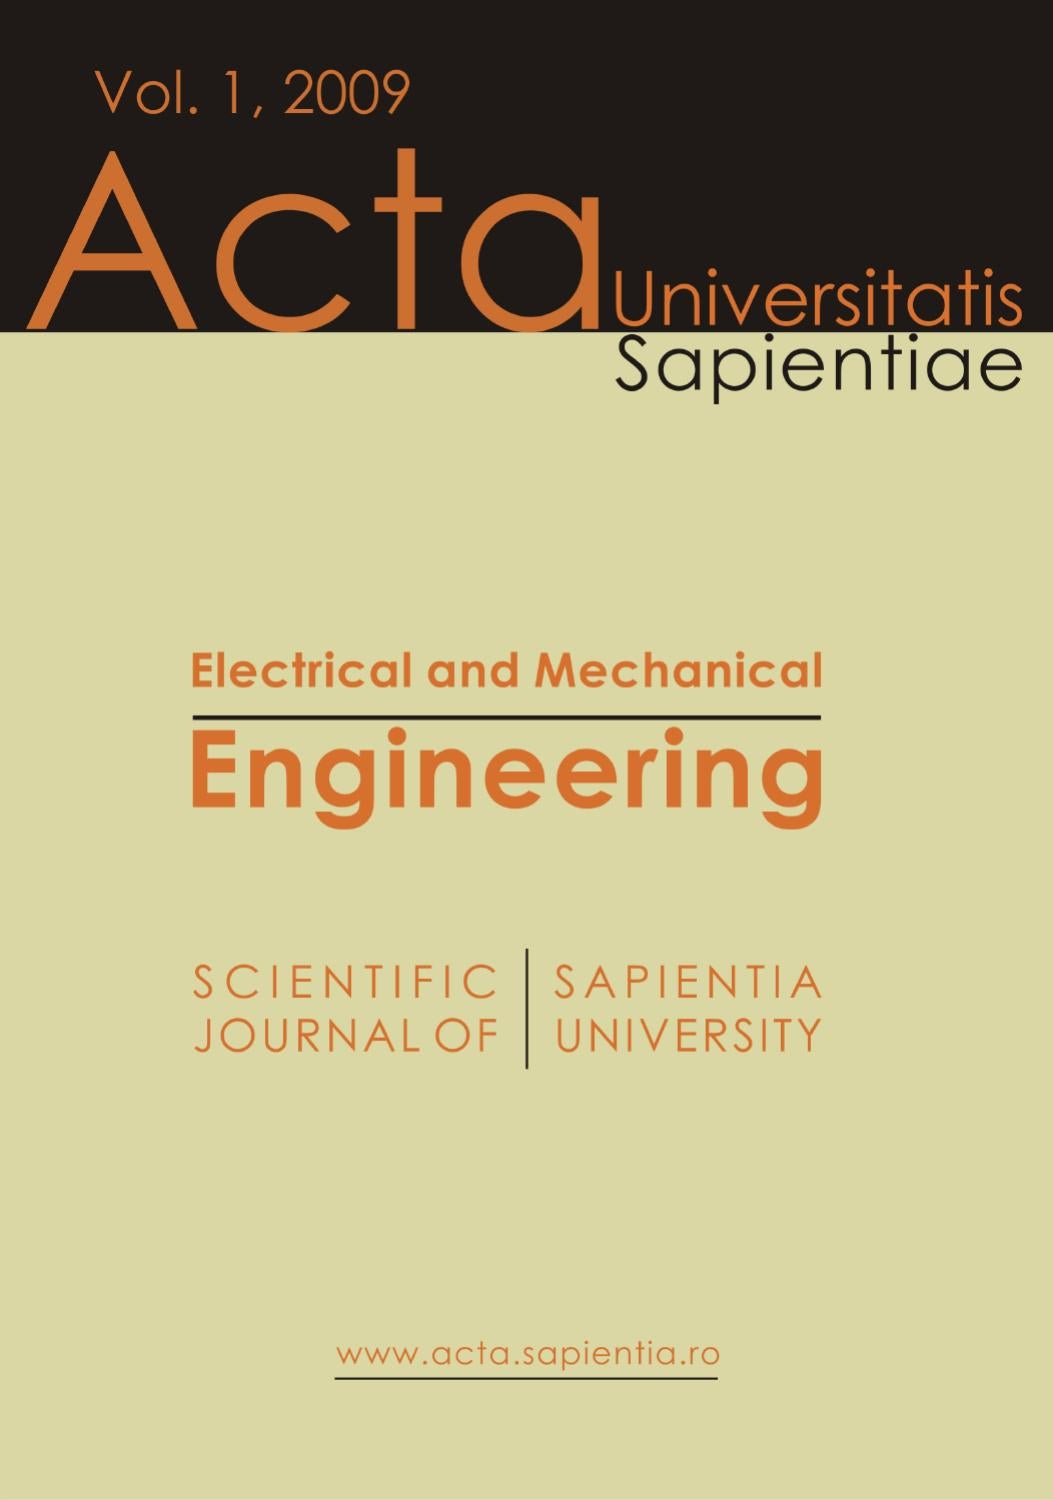 Electrical And Mechanical Engineering Vol 1 2009 By Acta Adjustable Timer Circuit With 555 Ic P Marian Timers Universitatis Sapientiae Issuu